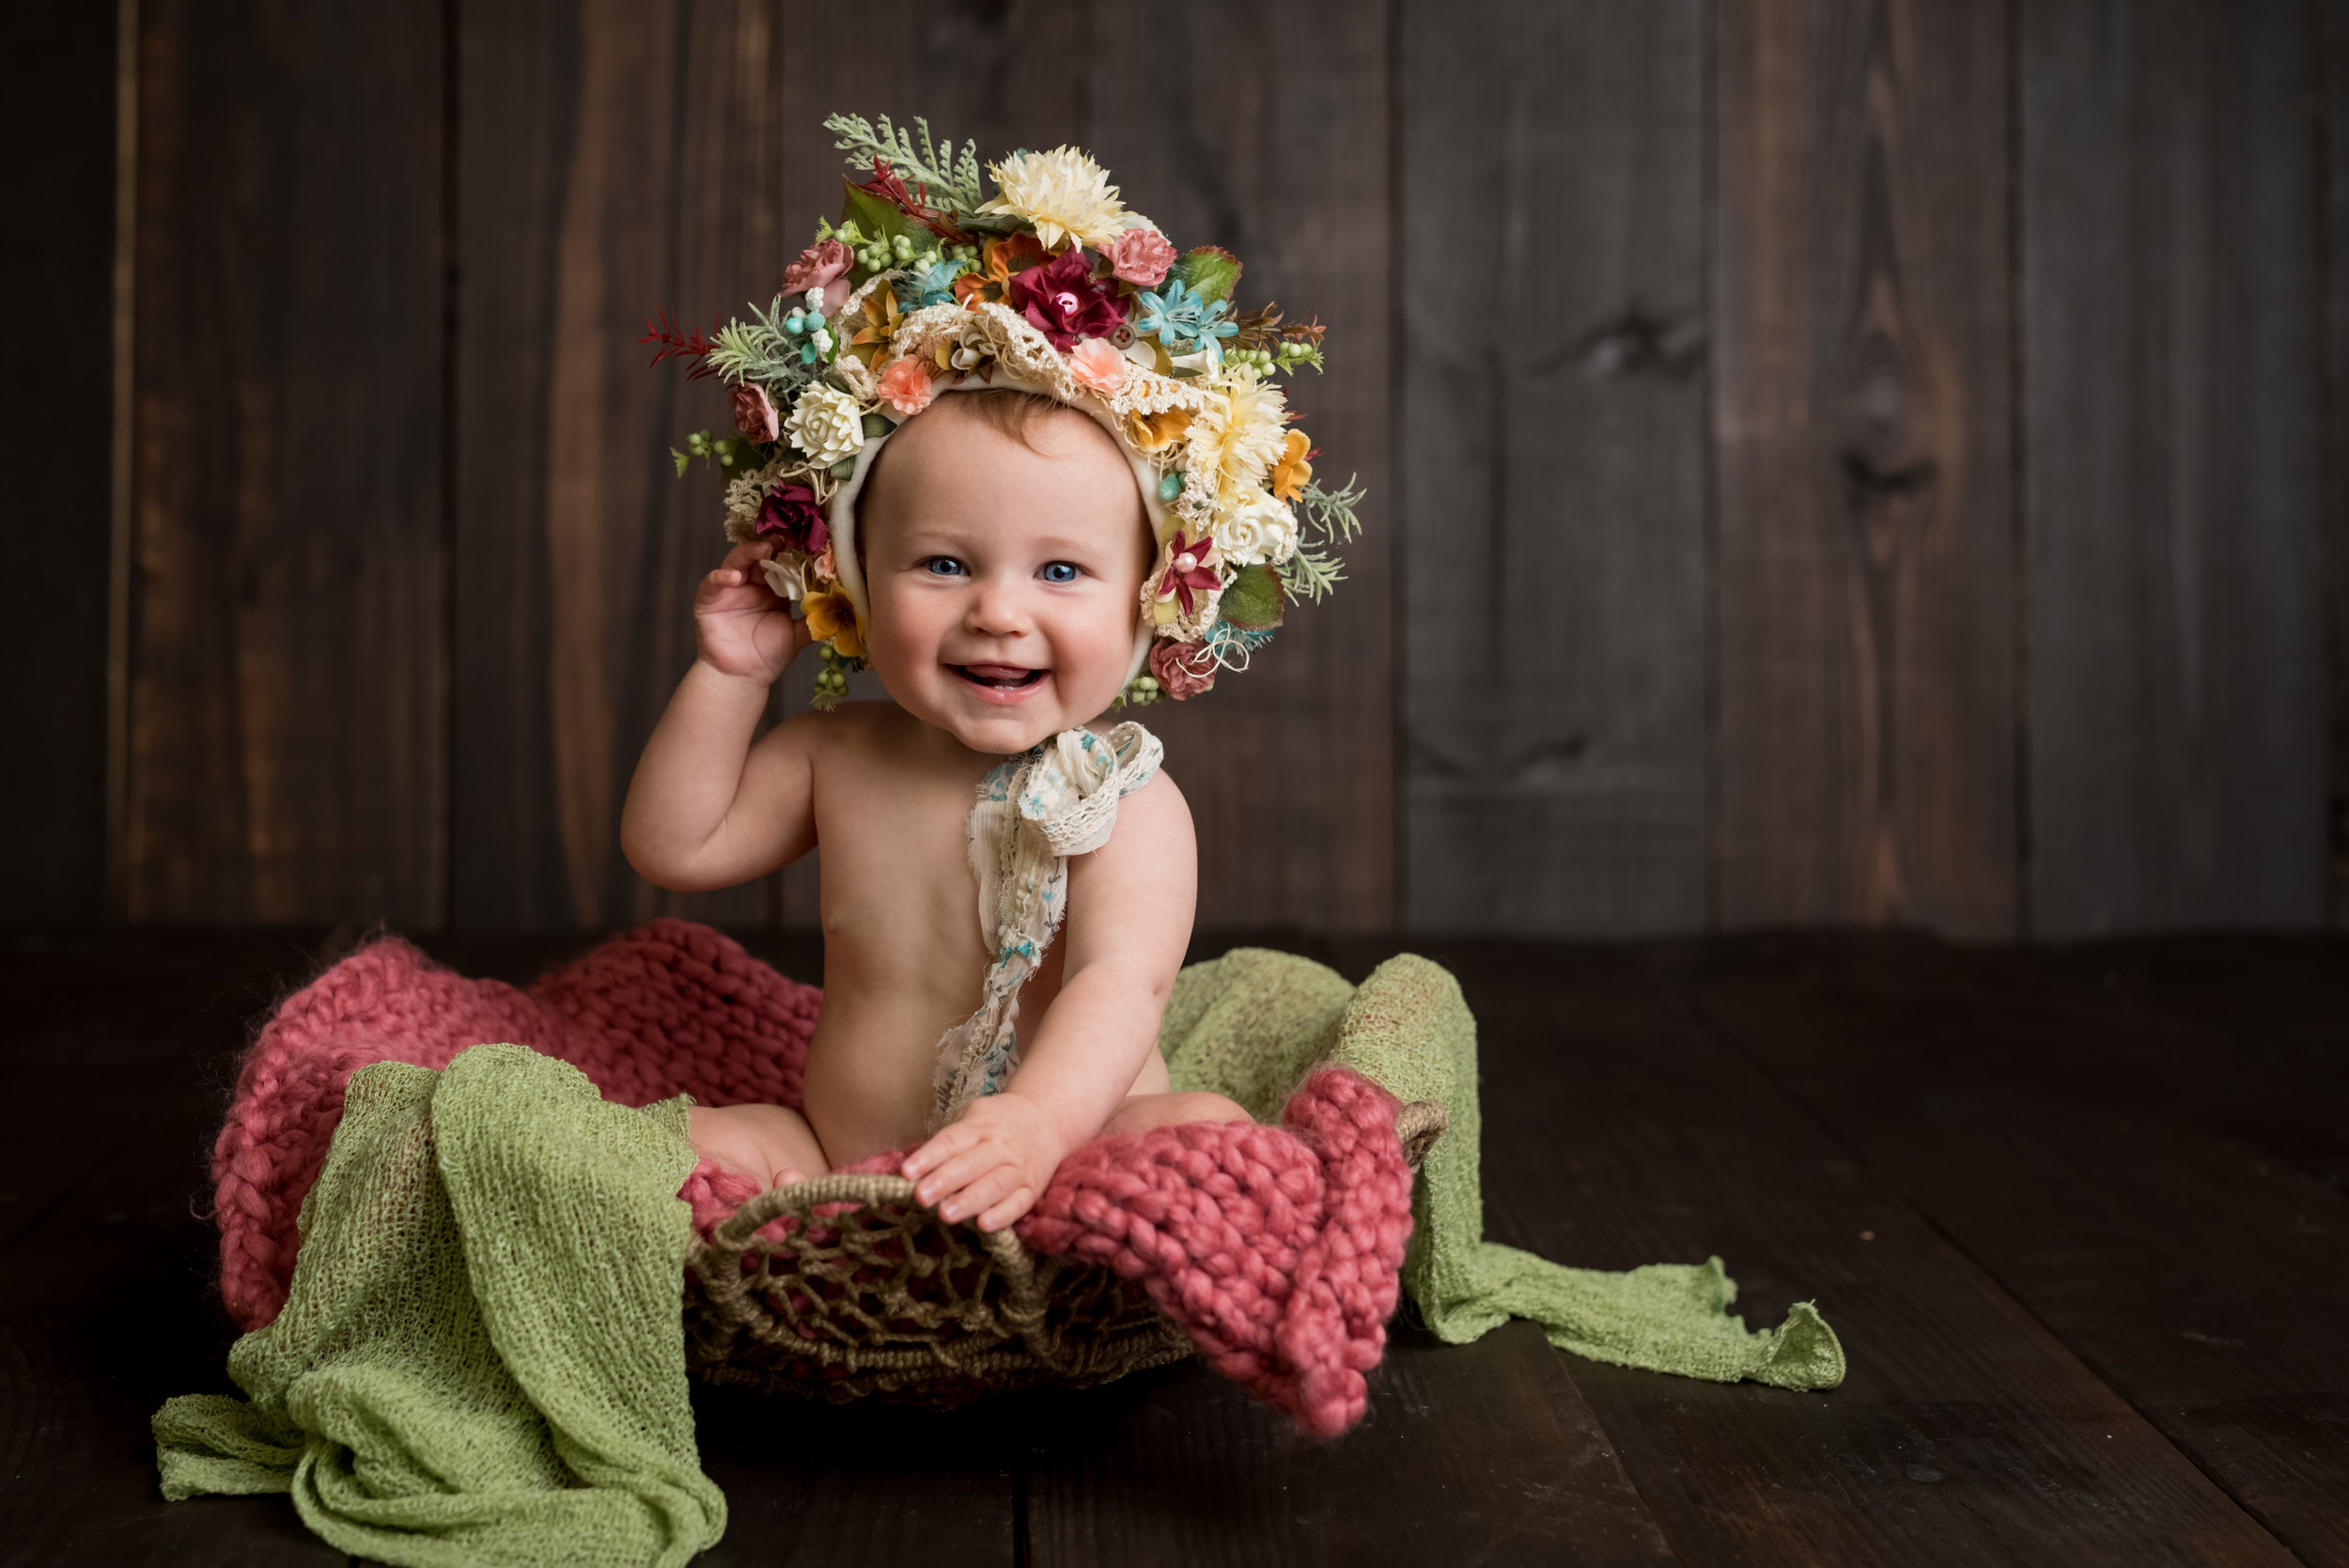 sitter session with junebug photography studio in manhattan, ks of a little girl in a flower bonnet